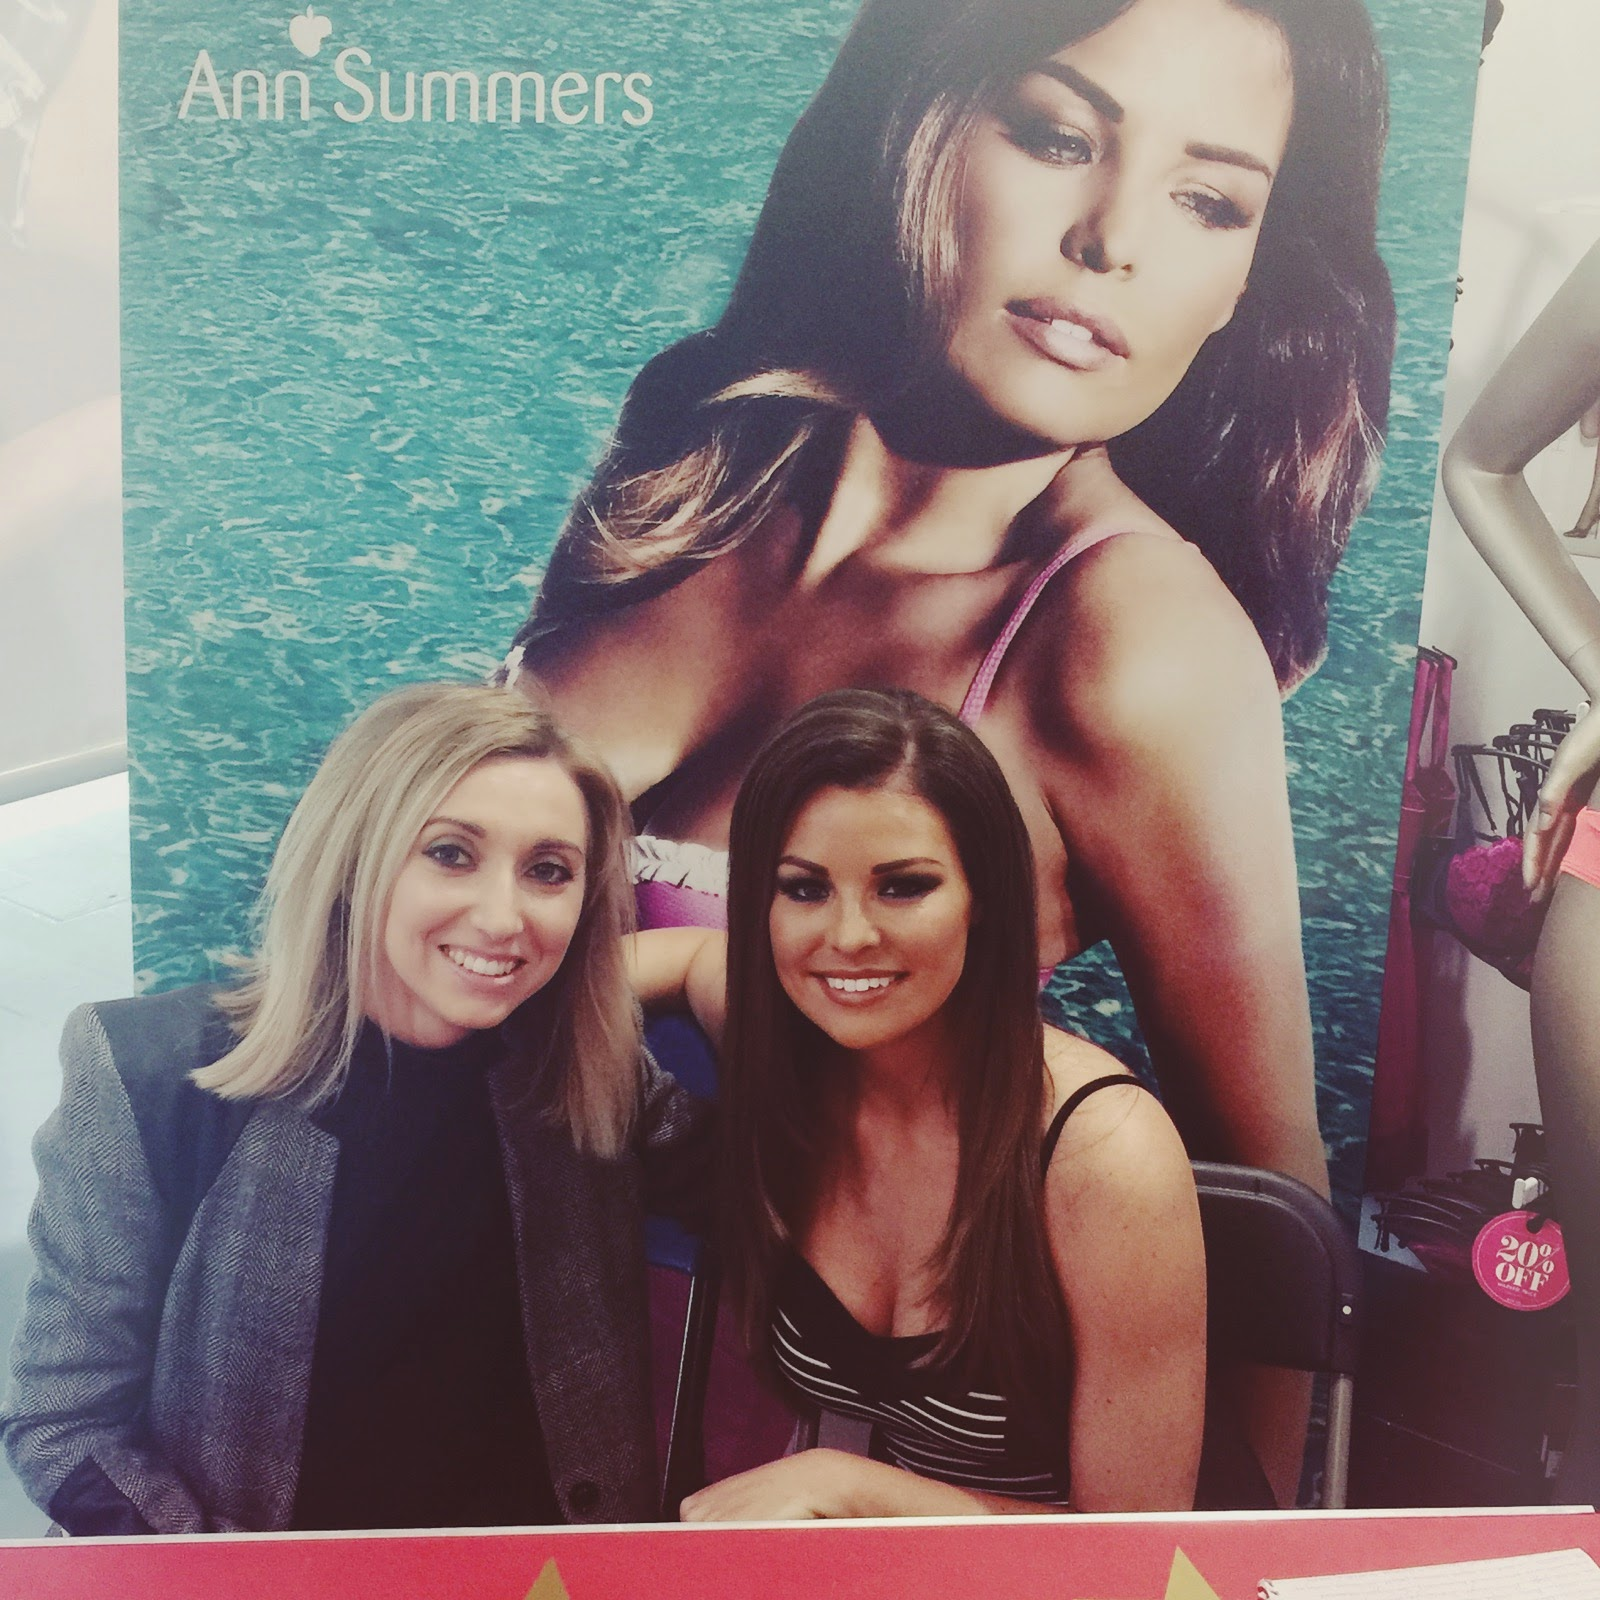 Jess Wright Ann Summers Swimwear